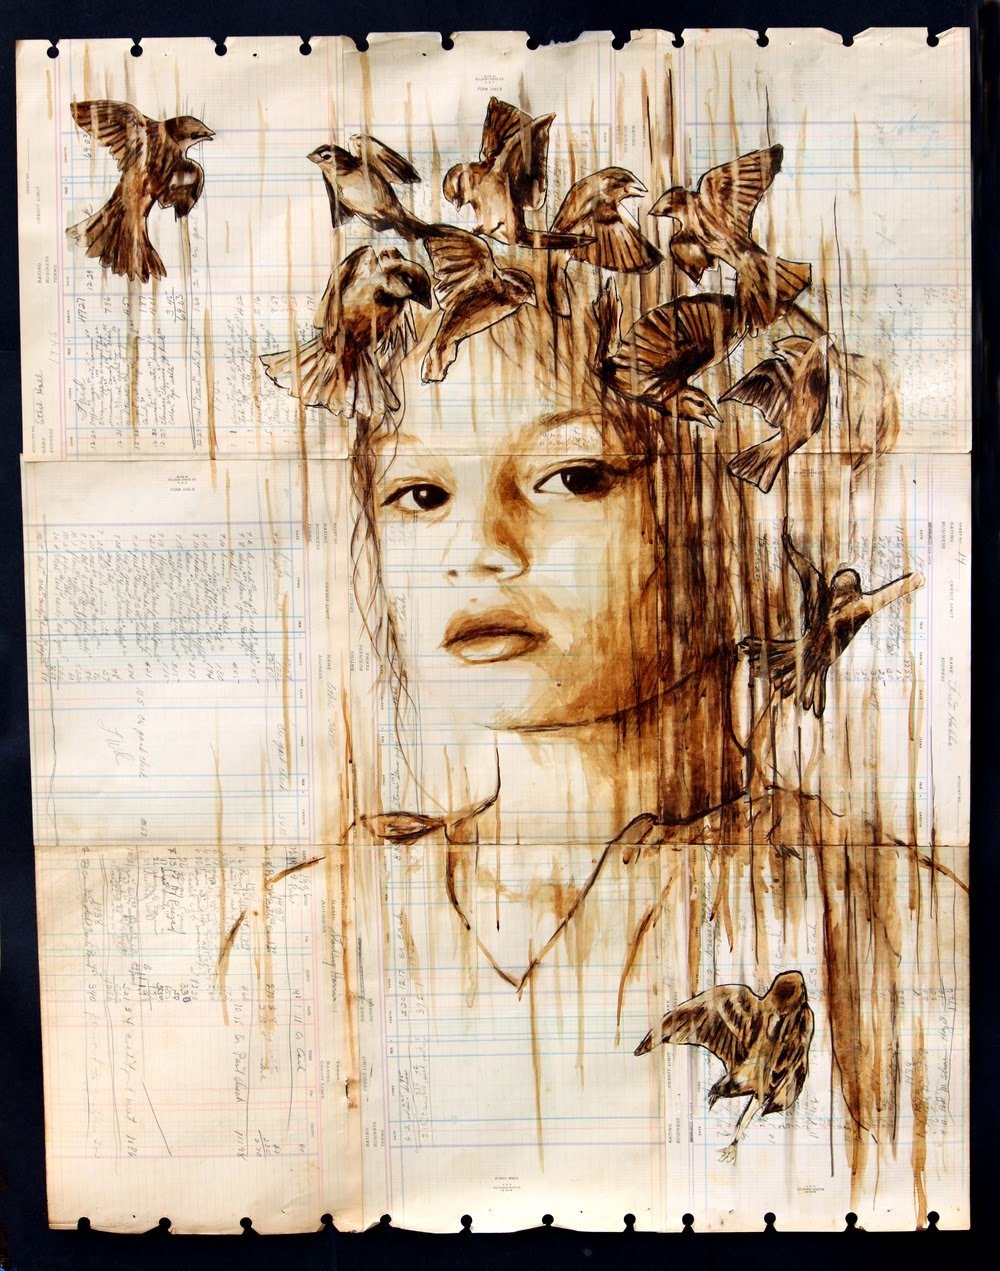 12-Ink-and-Coffee-Portrait-Paintings-Michael-Aaron-Williams-www-designstack-co